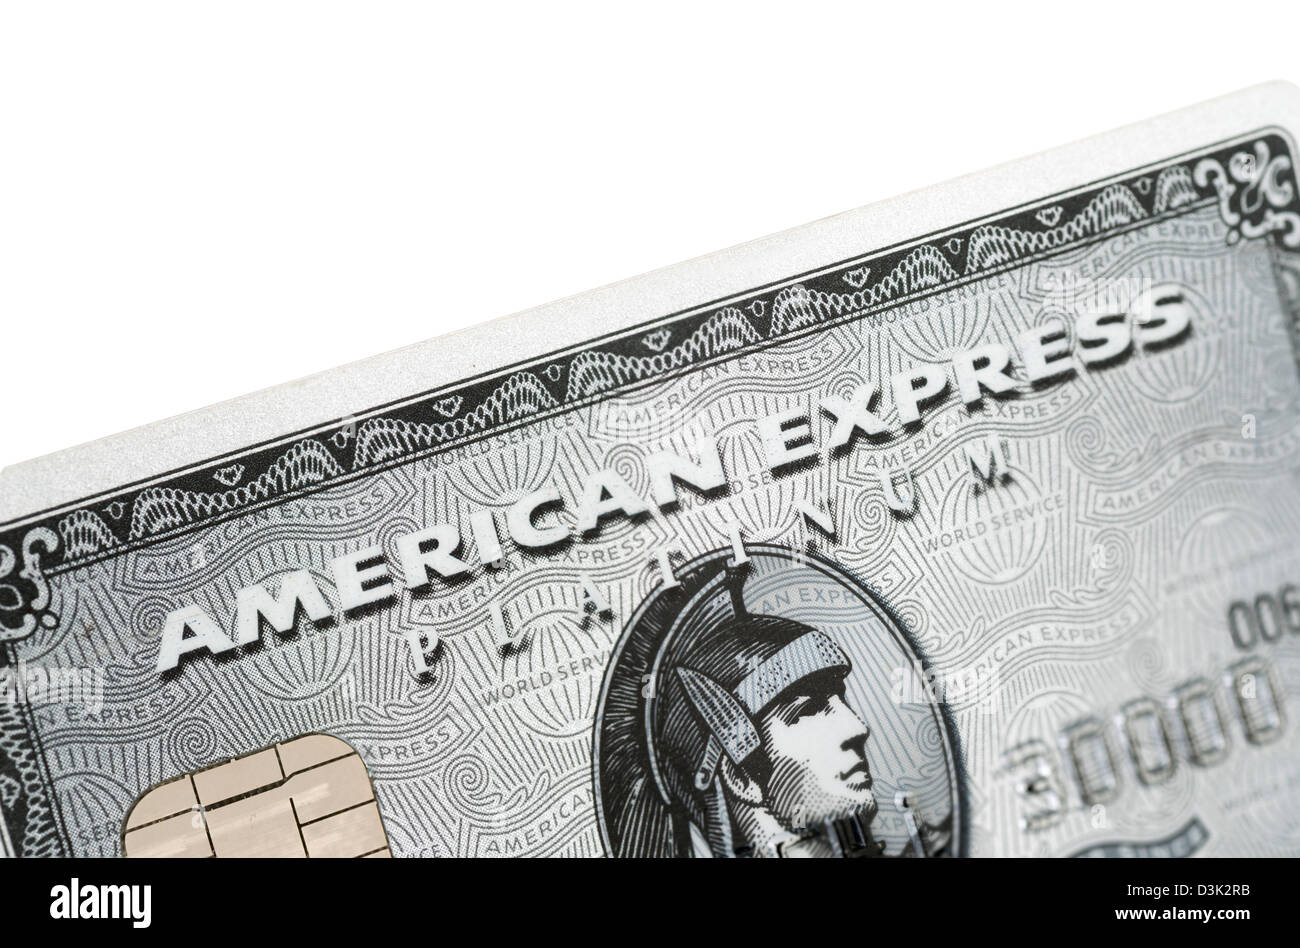 American Express Platinum charge card - Stock Image